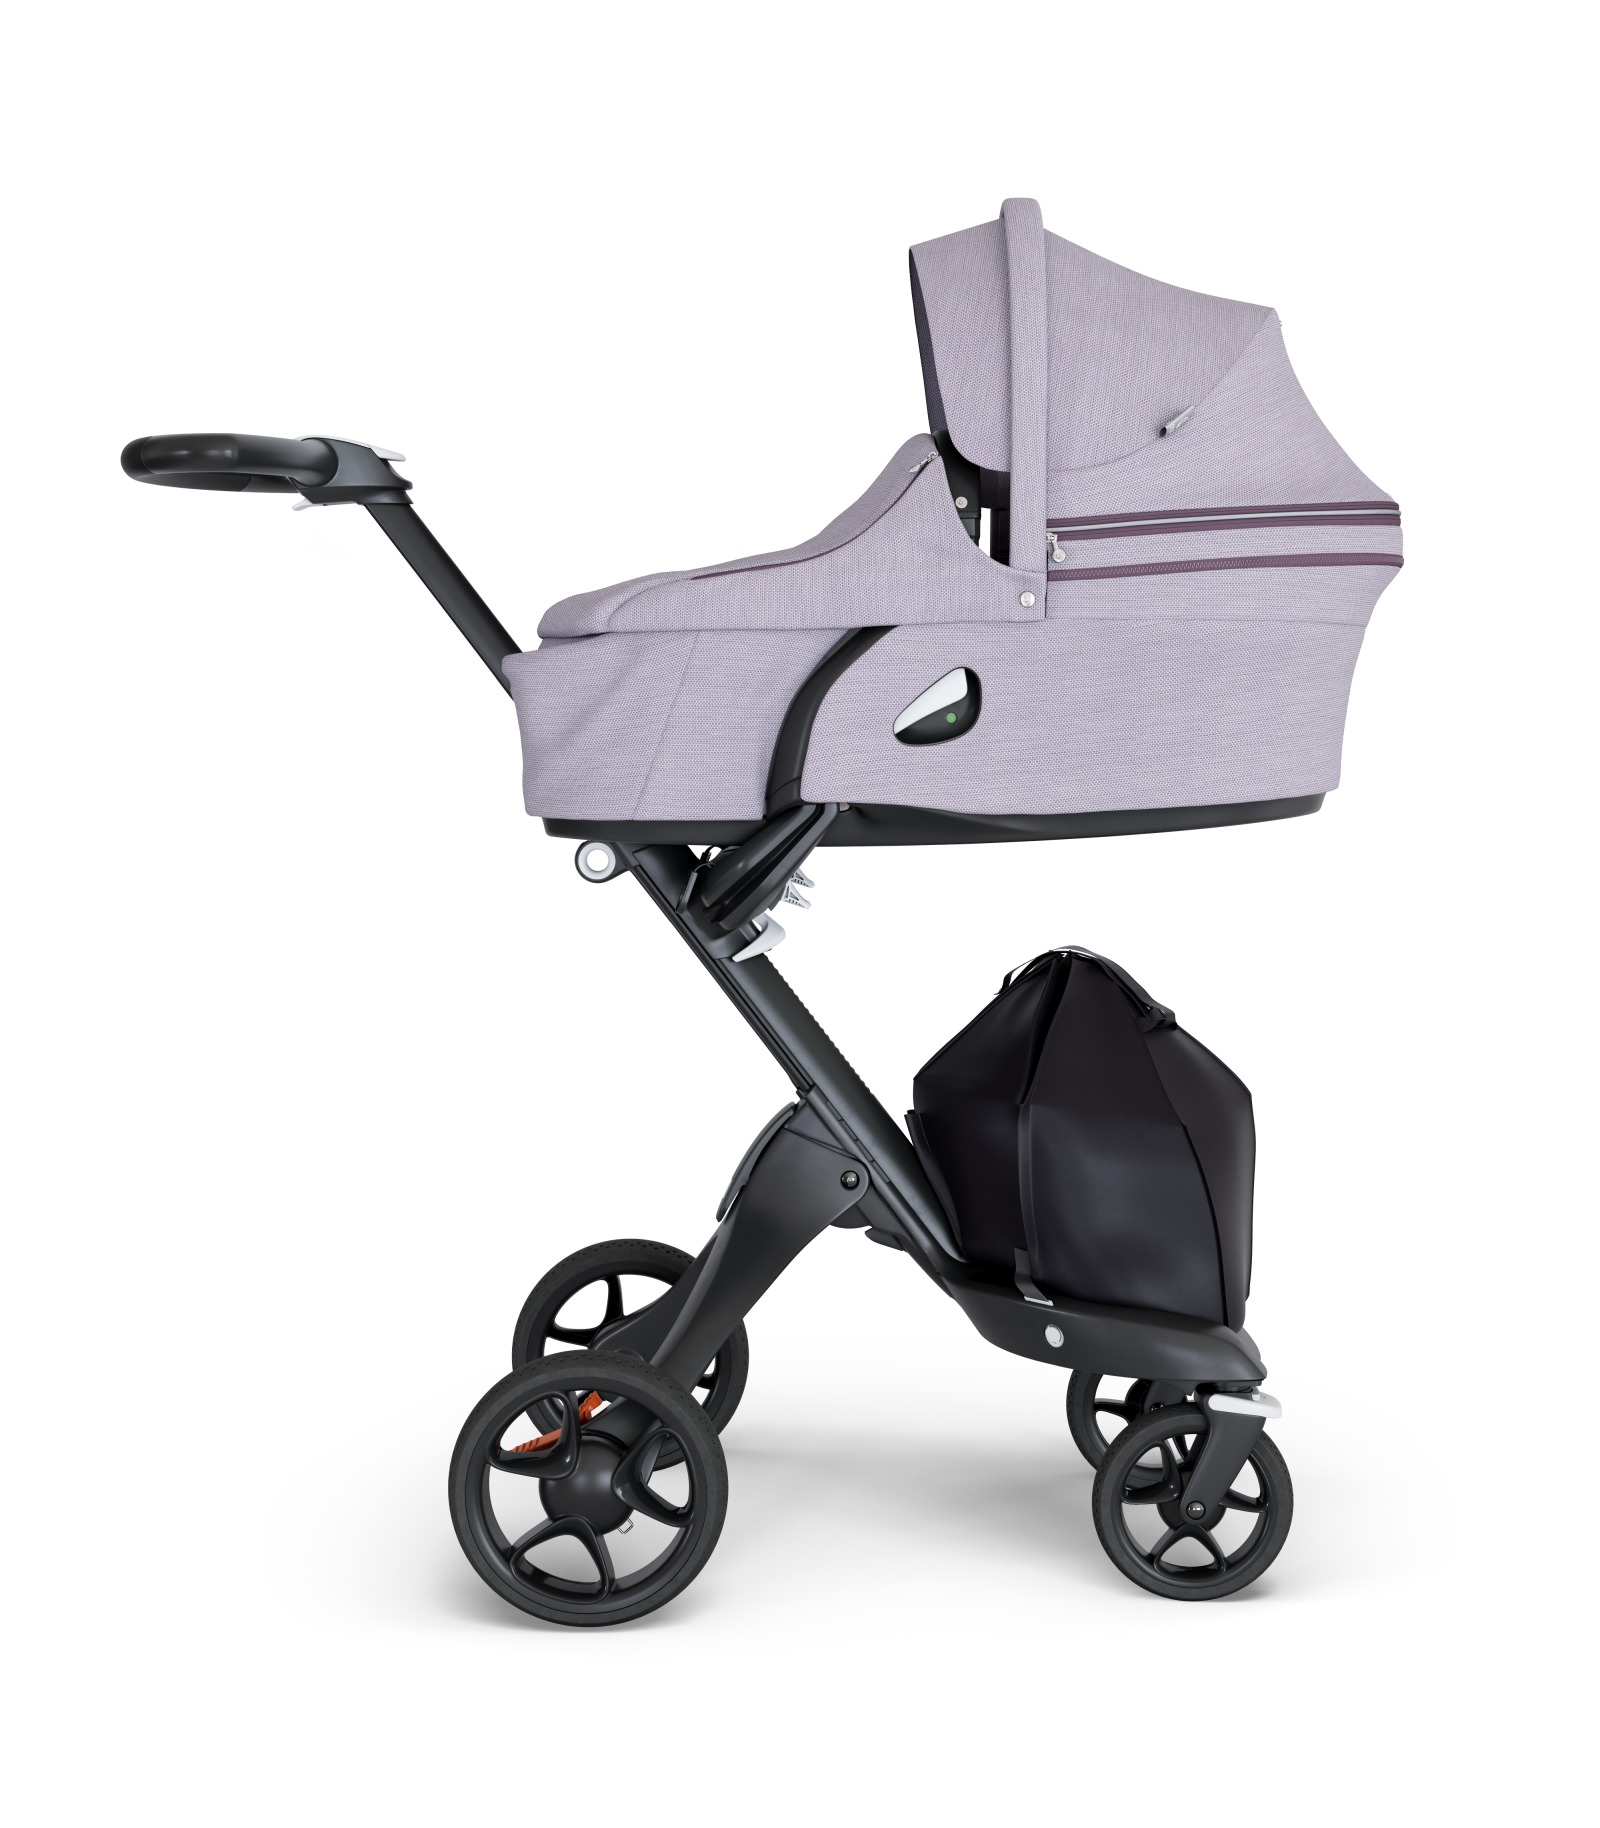 Stokke® Xplory® wtih Black Chassis and Leatherette Black handle. Stokke® Stroller Carry Cot Brushed Lilac.